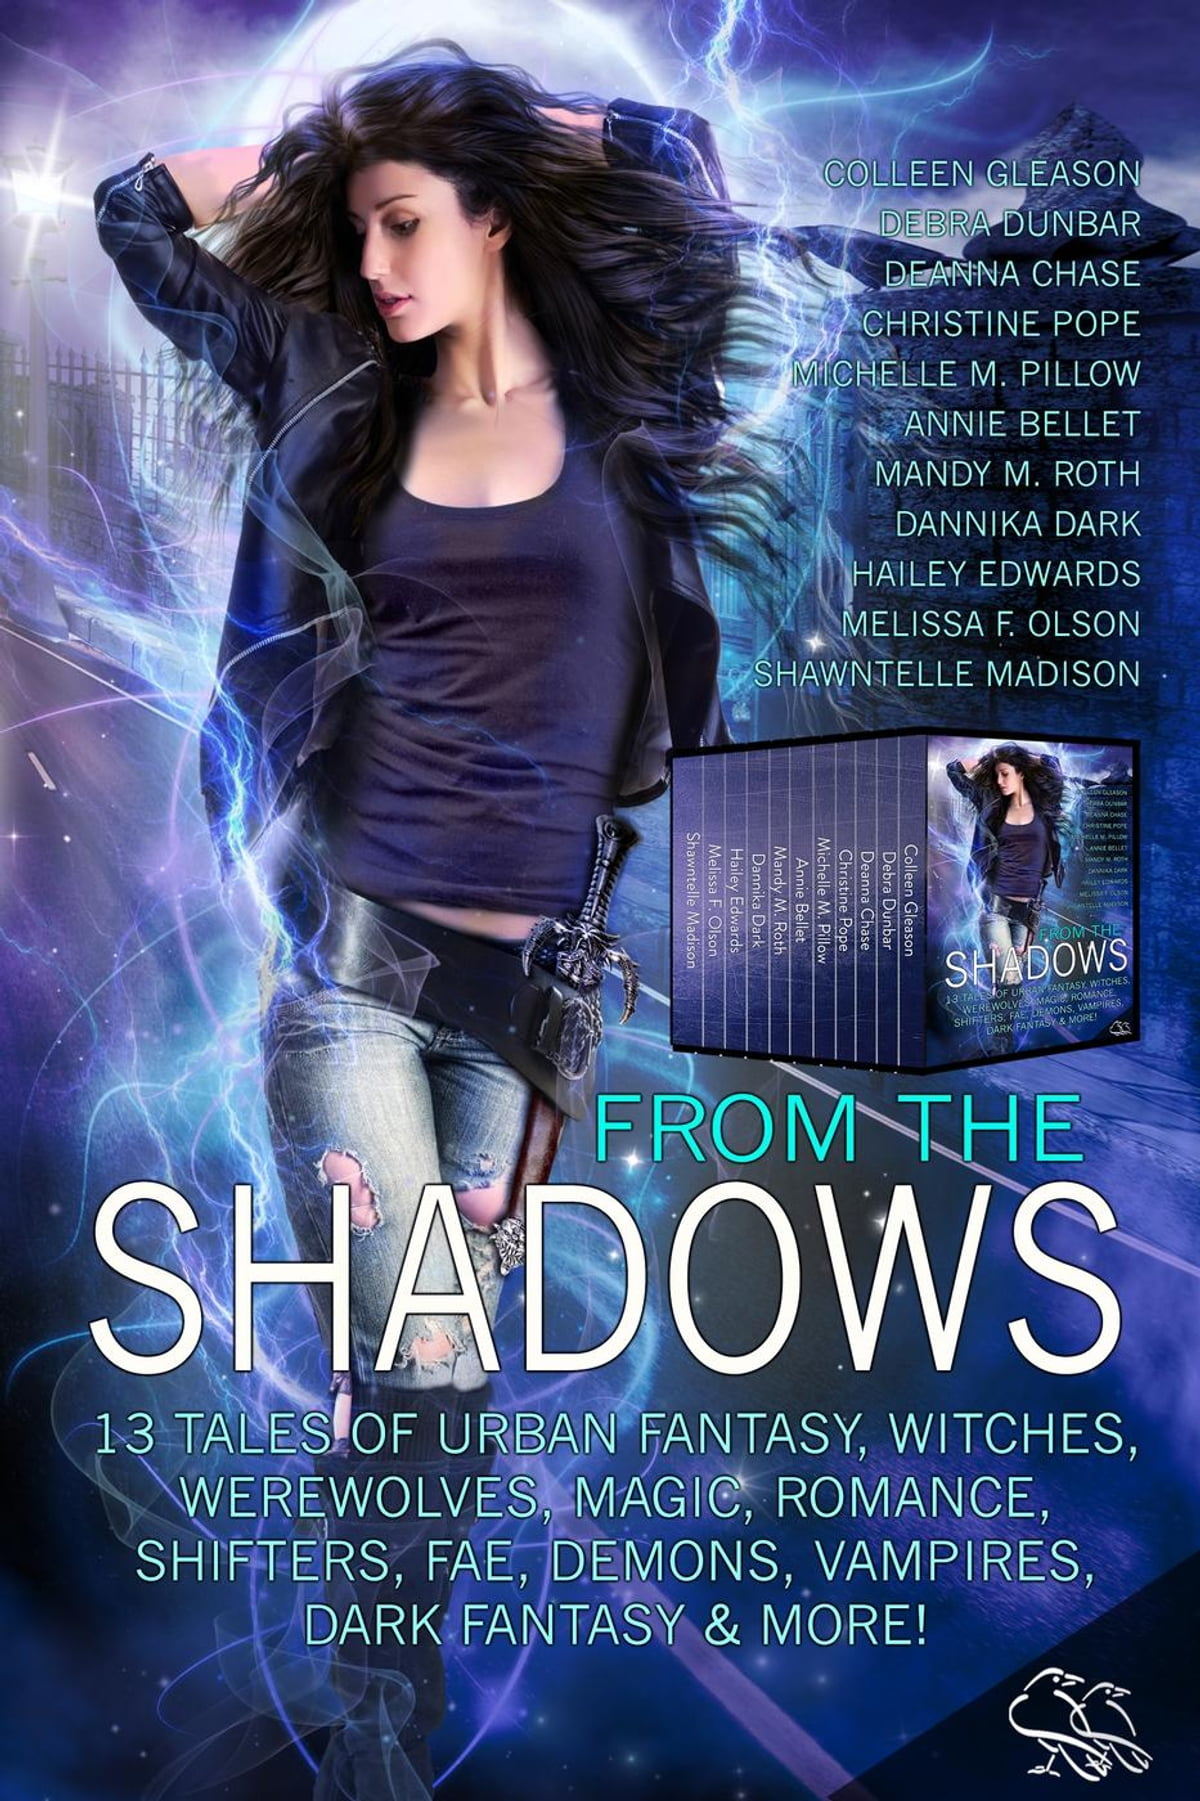 From The Shadows: 13 Tales Of Urban Fantasy, Witches, Werewolves, Magic,  Romance, Shifters, Fae, Demons, Vampires, Dark Fantasy & More! Ebook By  Mandy M